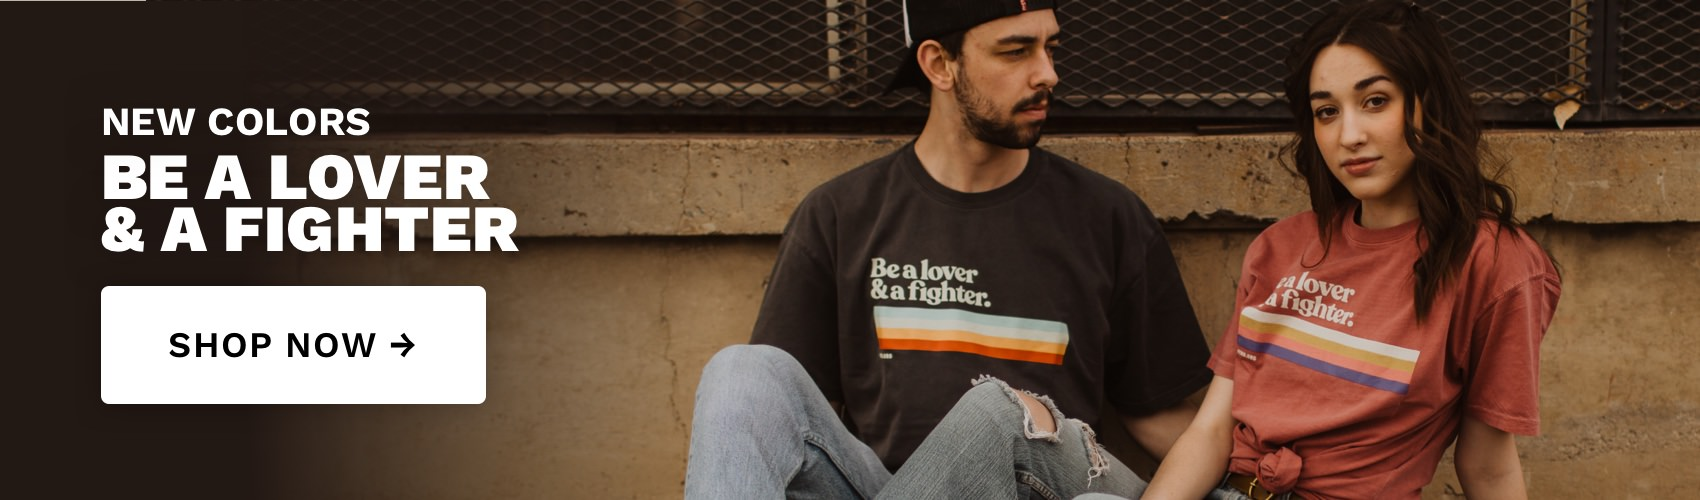 Be A Lover And A Fighter - Retro